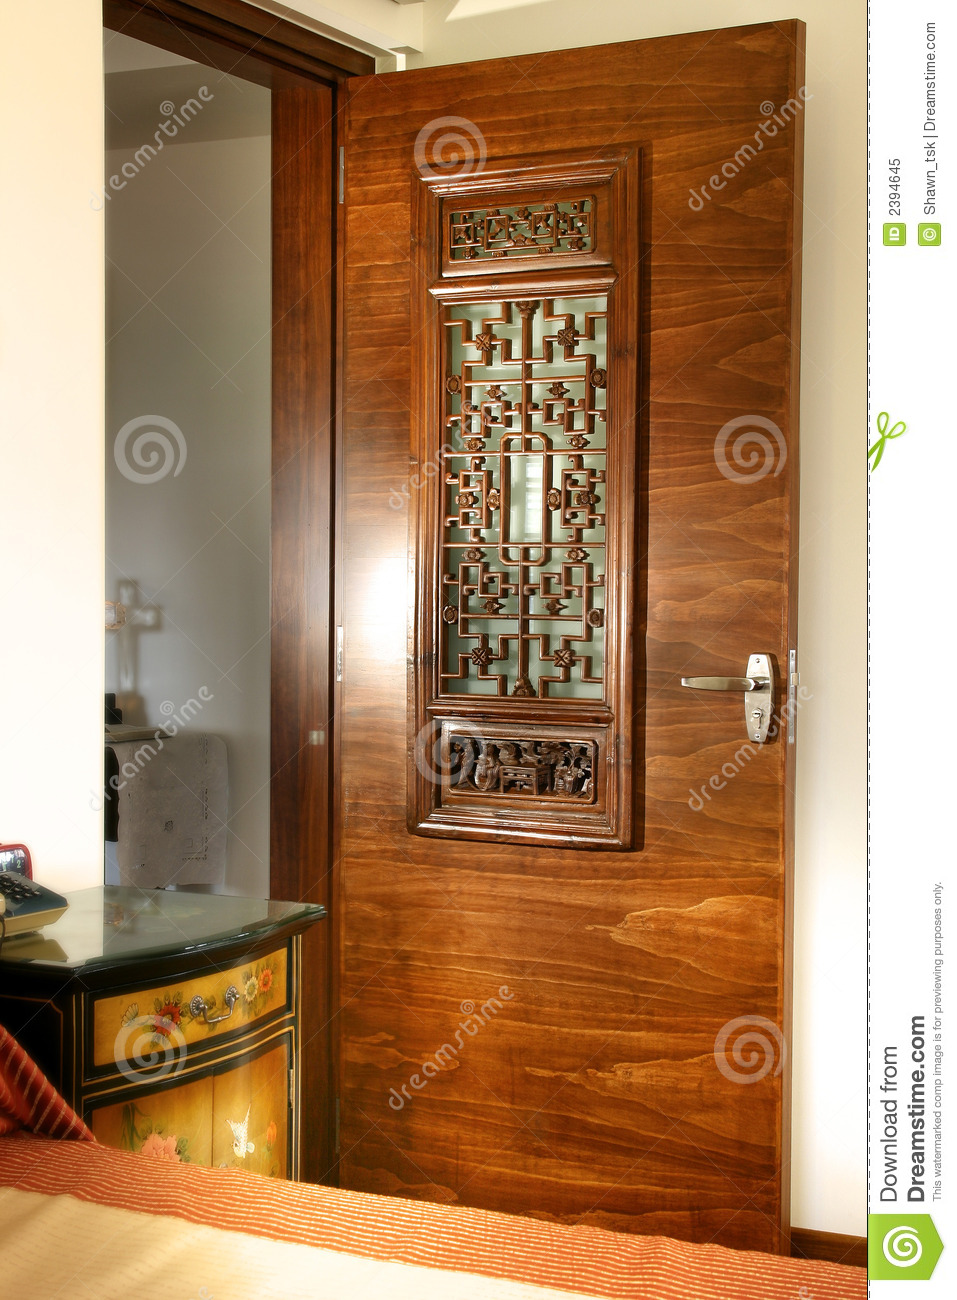 Interior design door panel royalty free stock photo for Main door panel design